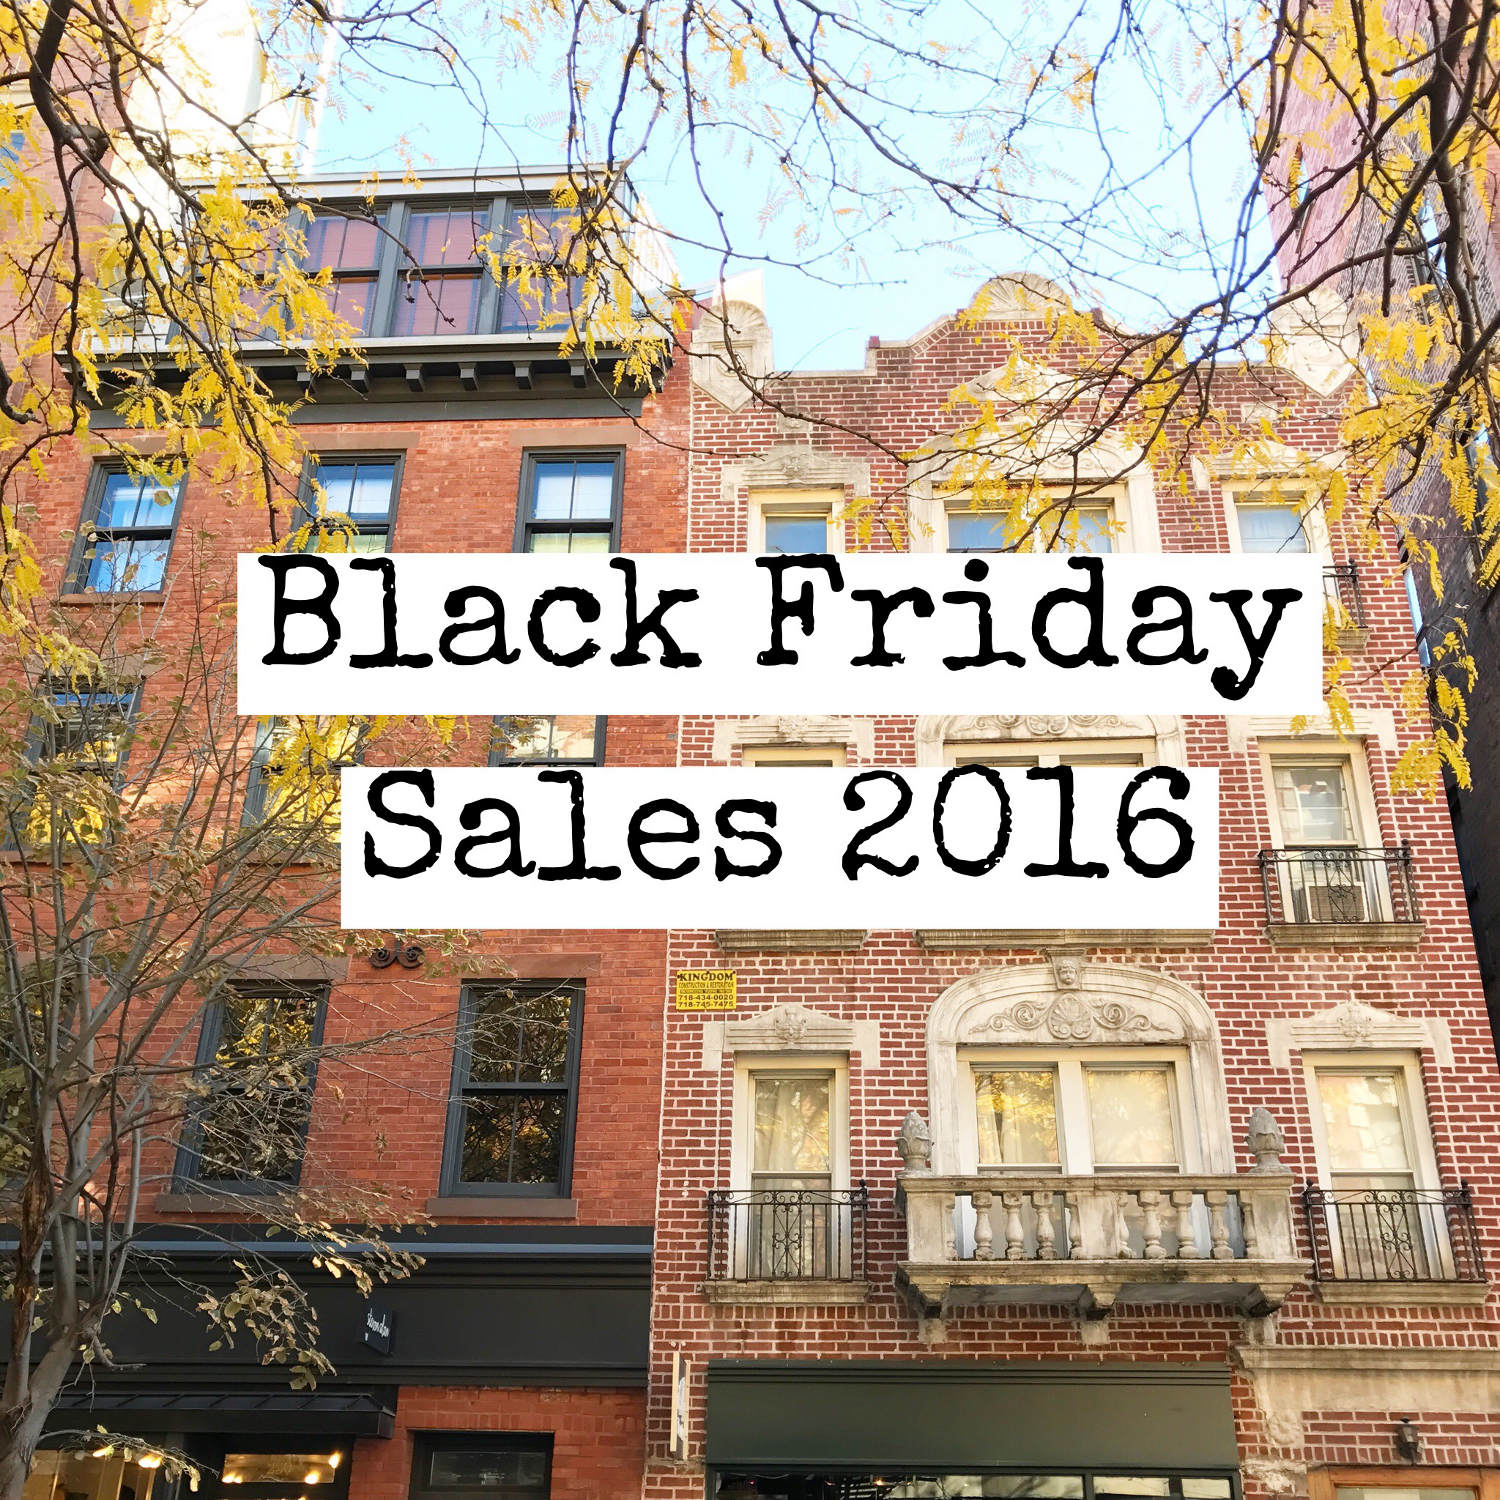 black friday 2016 - black friday sales 2016